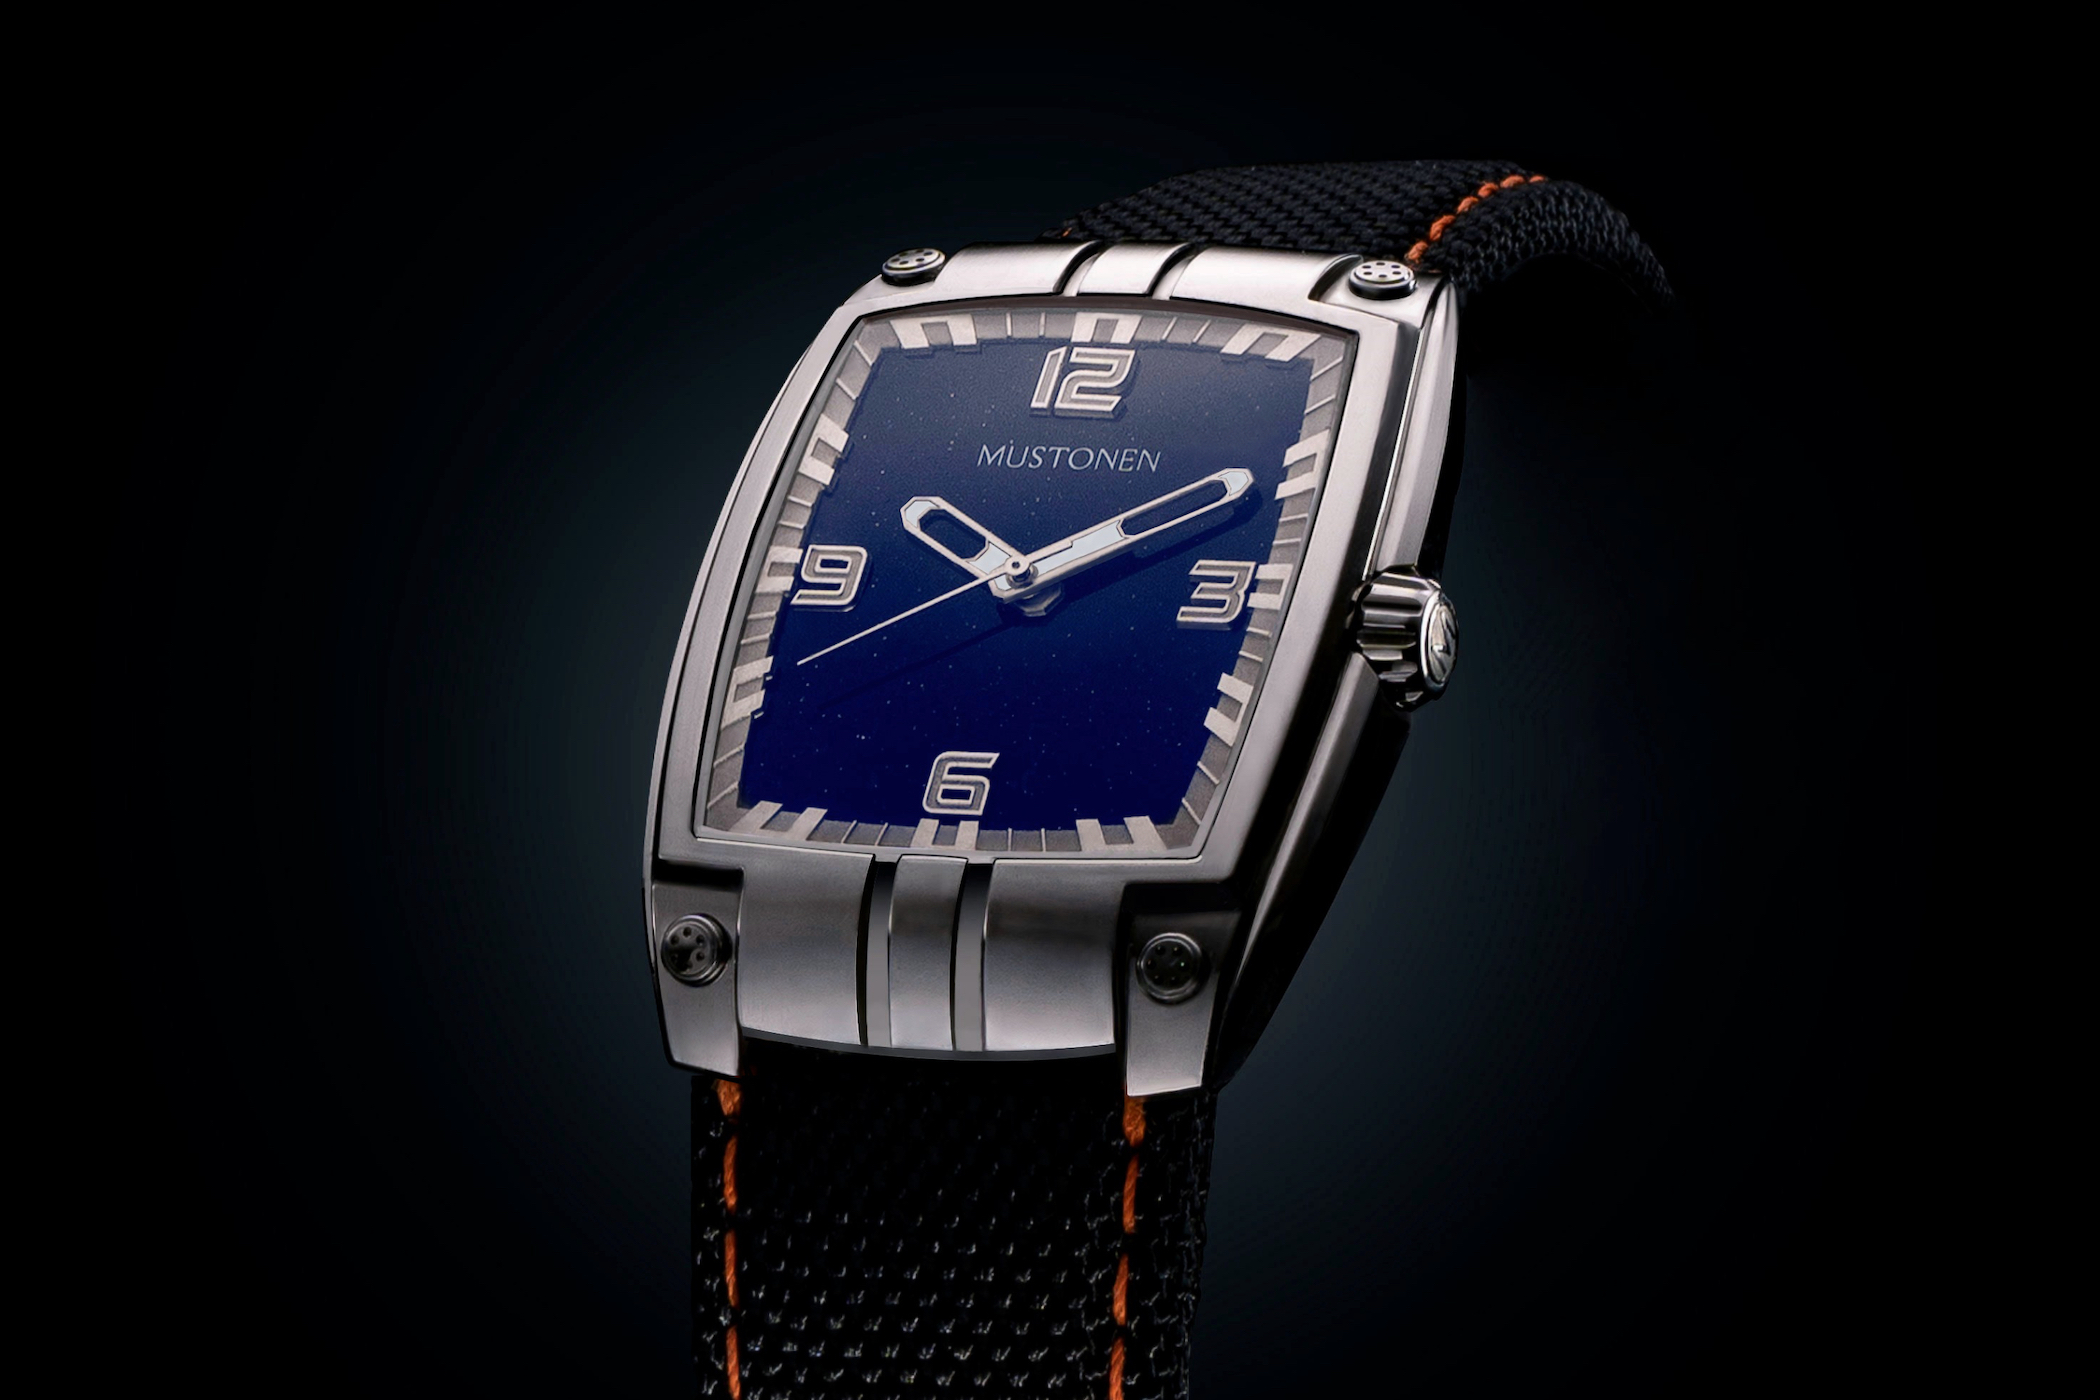 Mustonen M-1 Collection - Mars Exploration-Themed Timepiece From Finland - 1